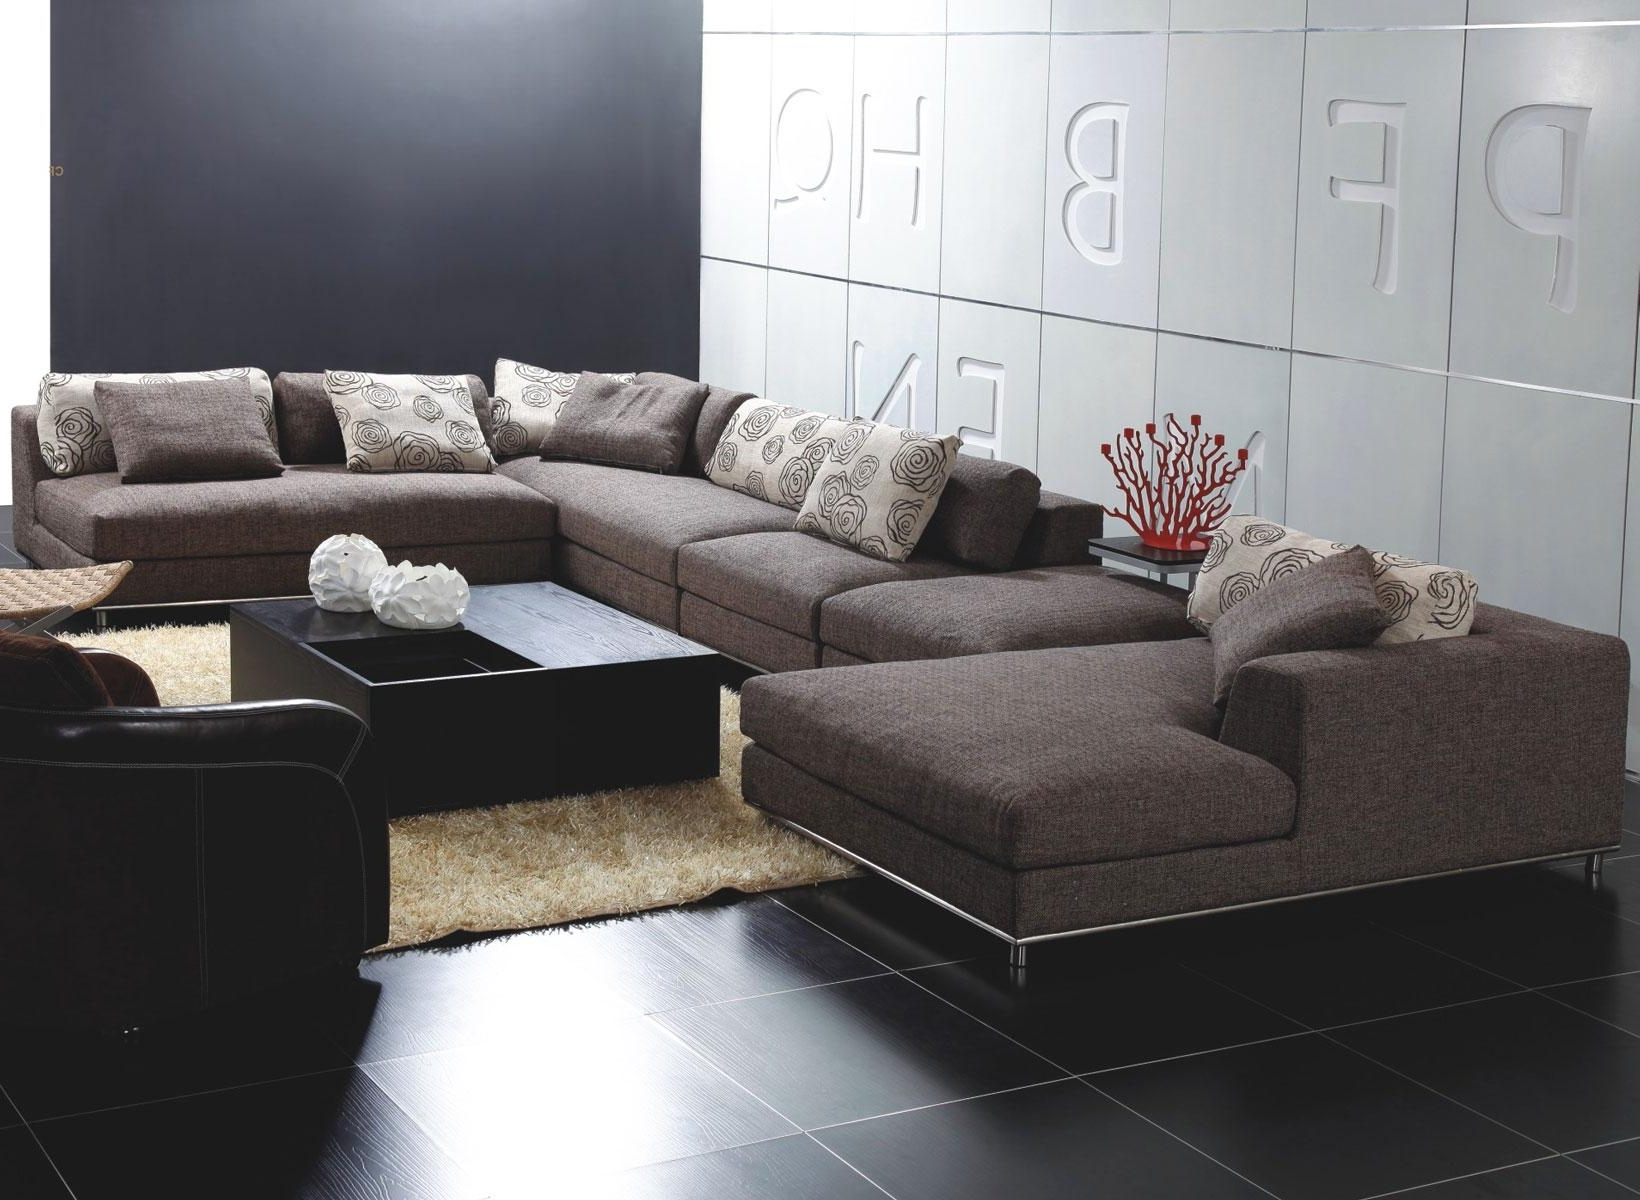 Contemporary Sectional Sofas Inside Recent Best Designer Sectional Sofas 56 Contemporary Sofa Inspiration (View 6 of 20)